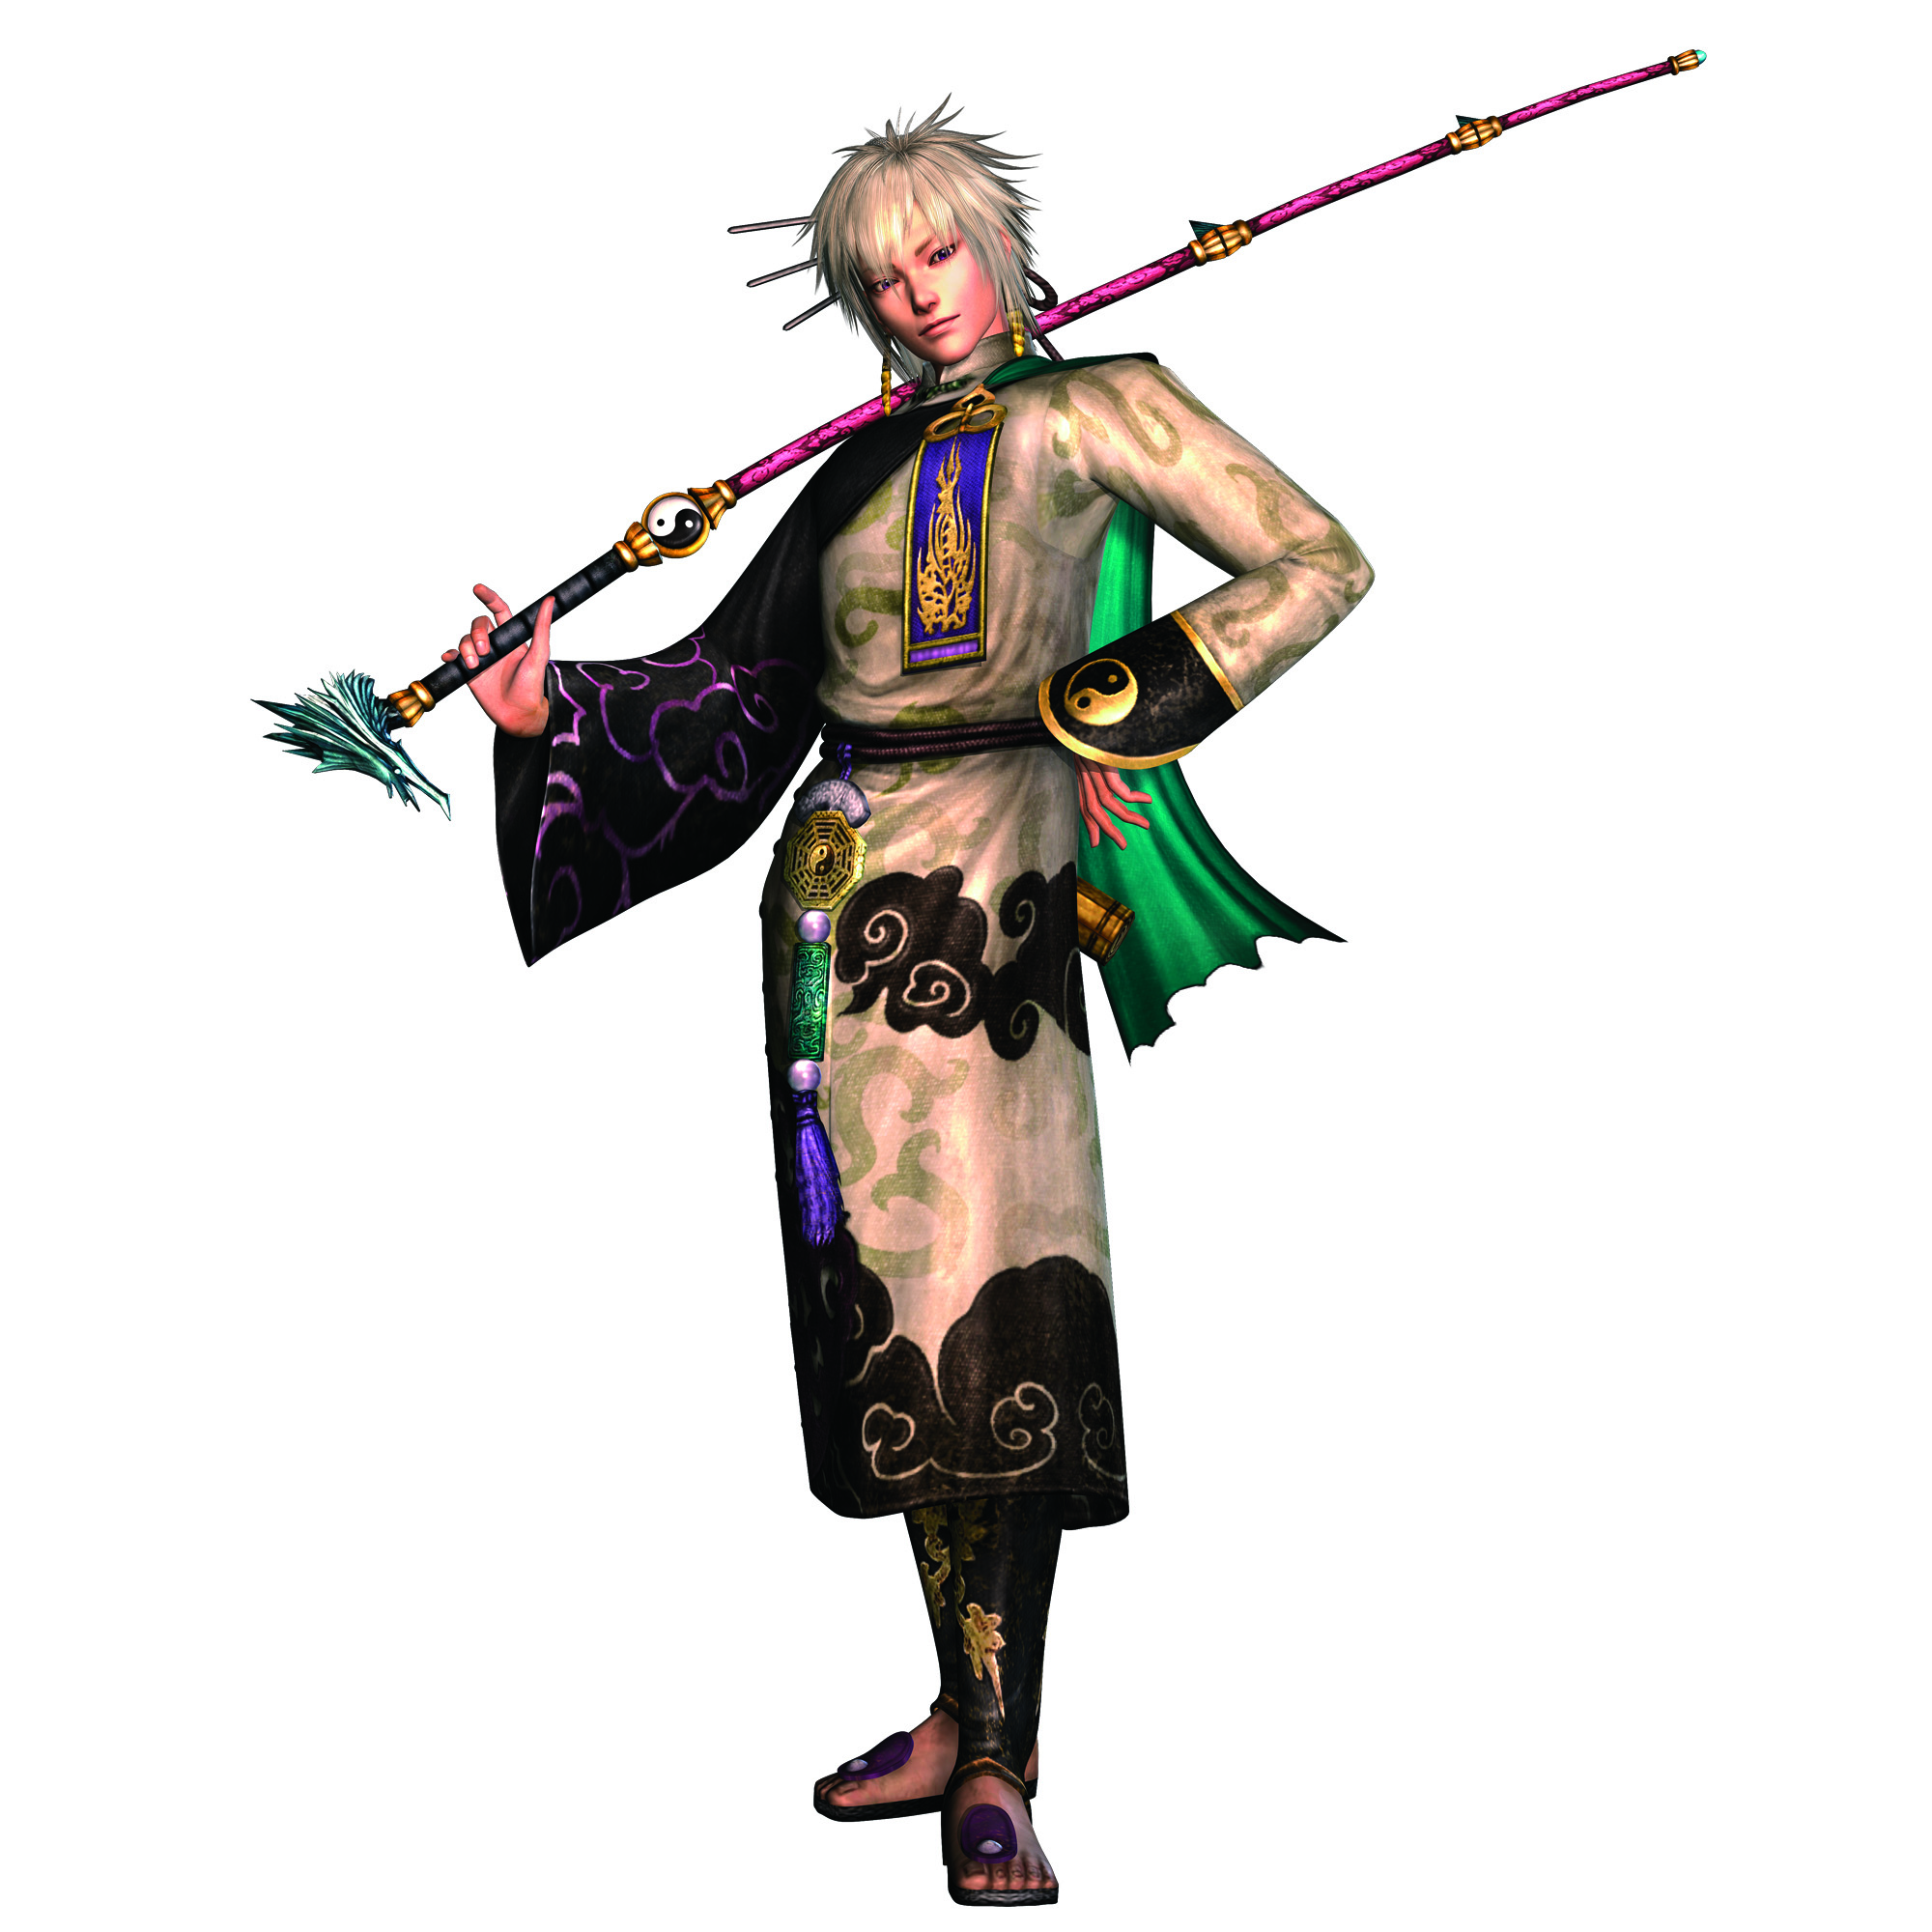 In-depth Preview: KOEI Teases New IP At E3 2009